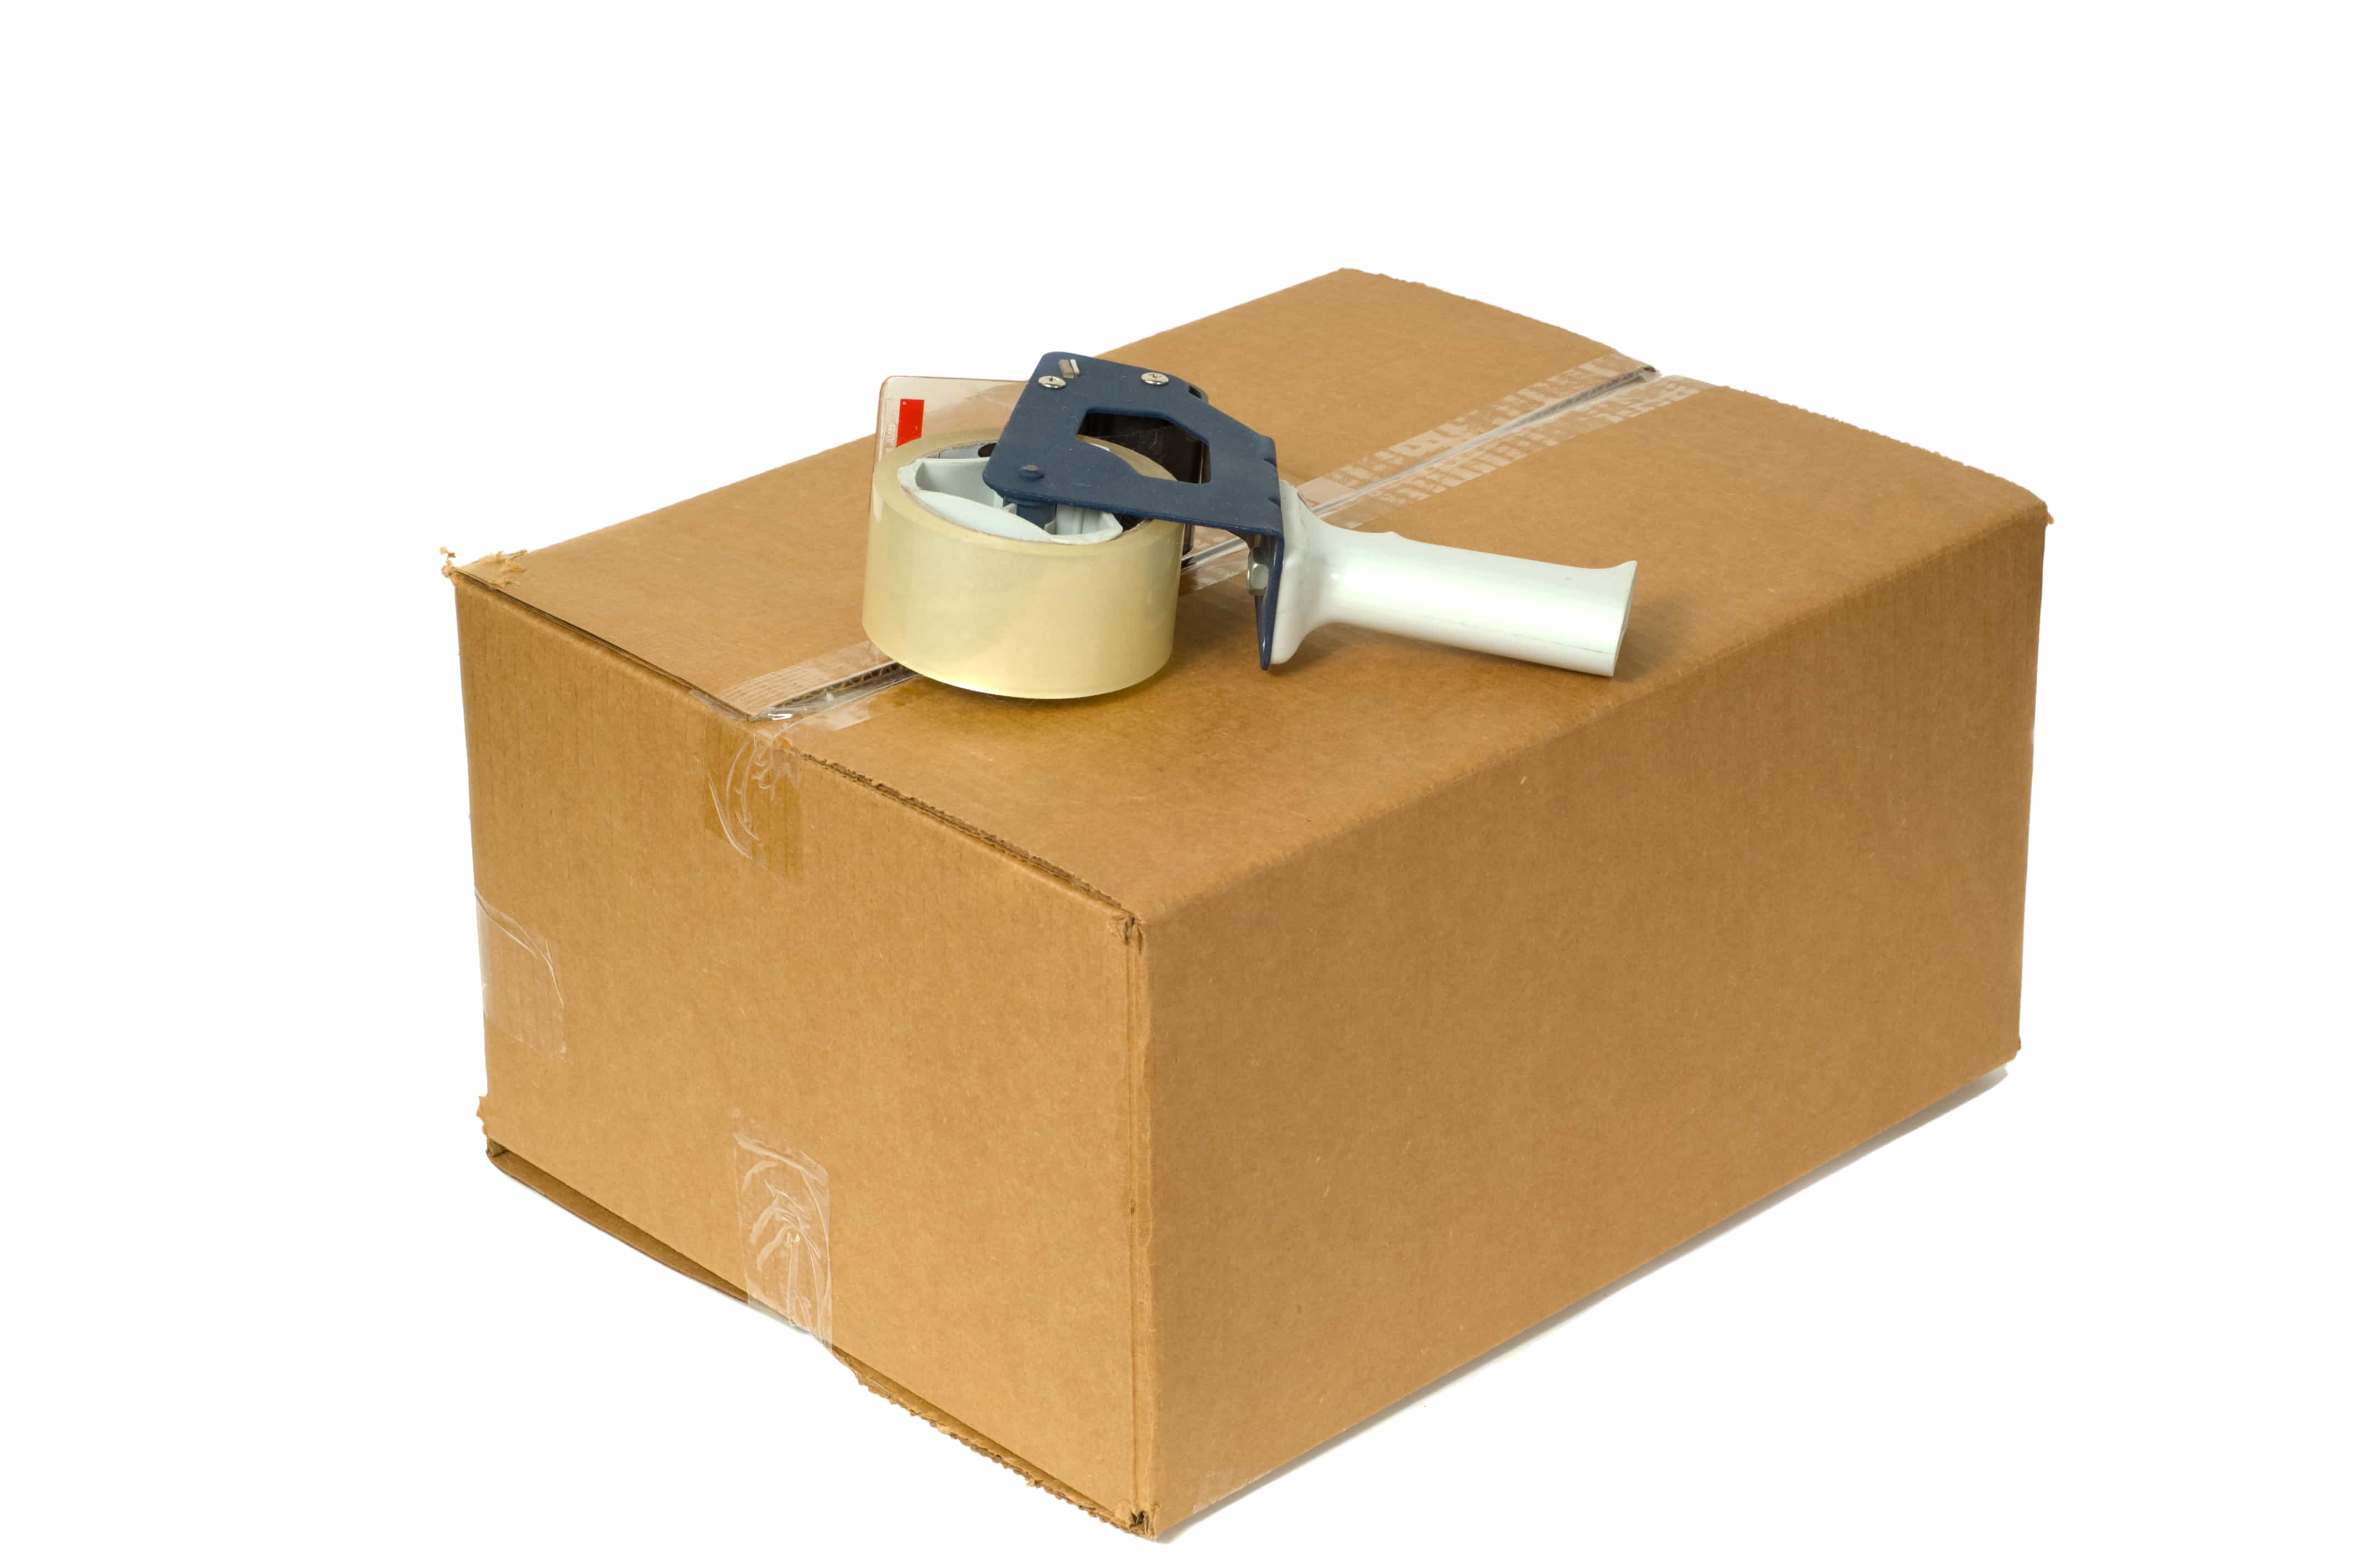 Shipping Box with a tape gun on top on white background space for copy on box or around box